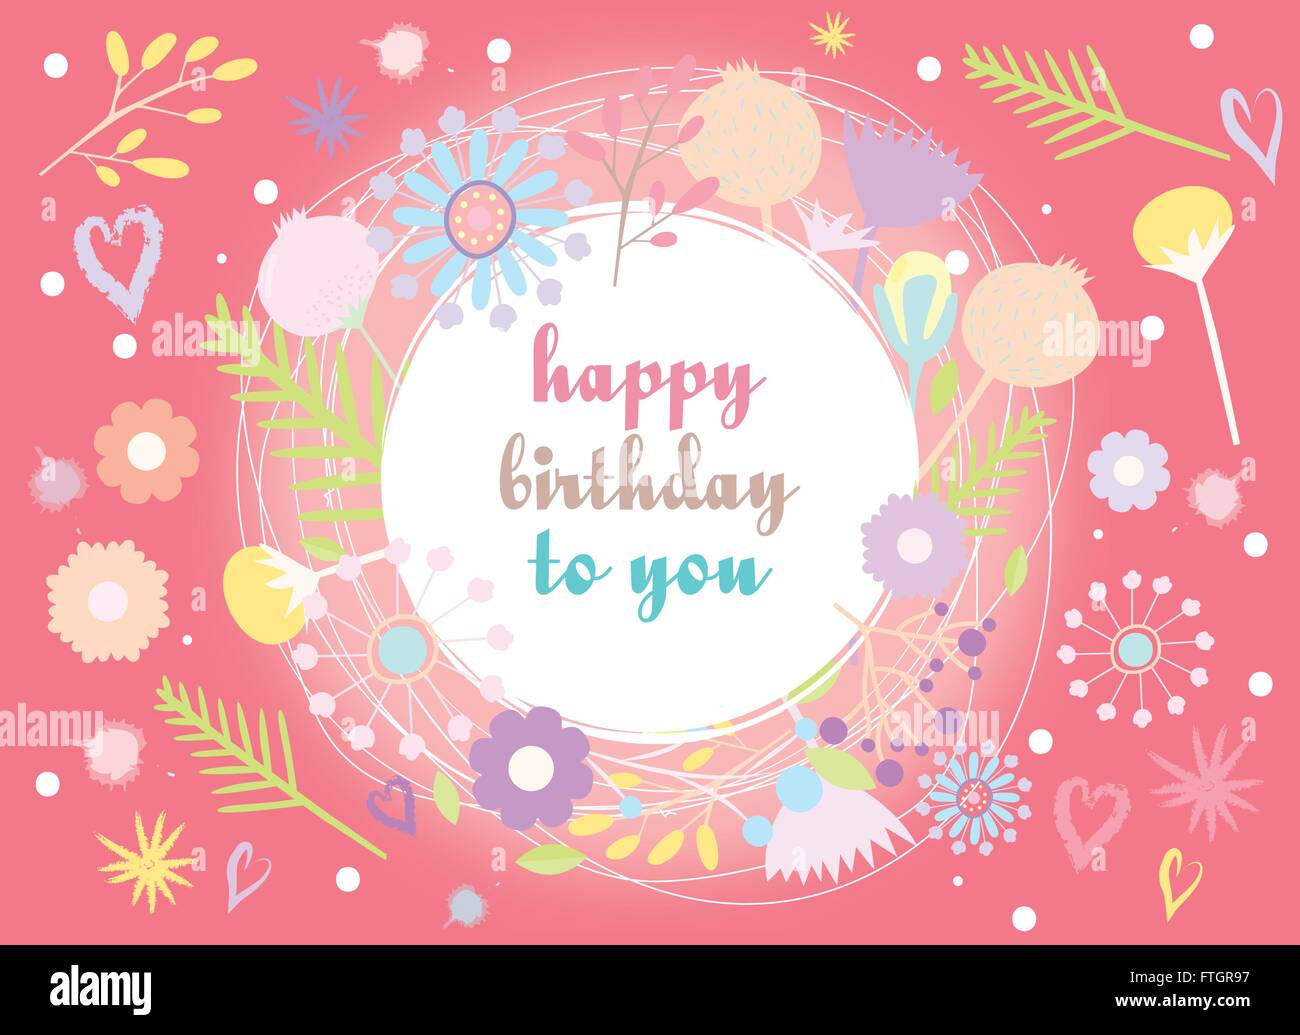 Happy Birthday To You Cute Greeting Card Vector Illustration Stock